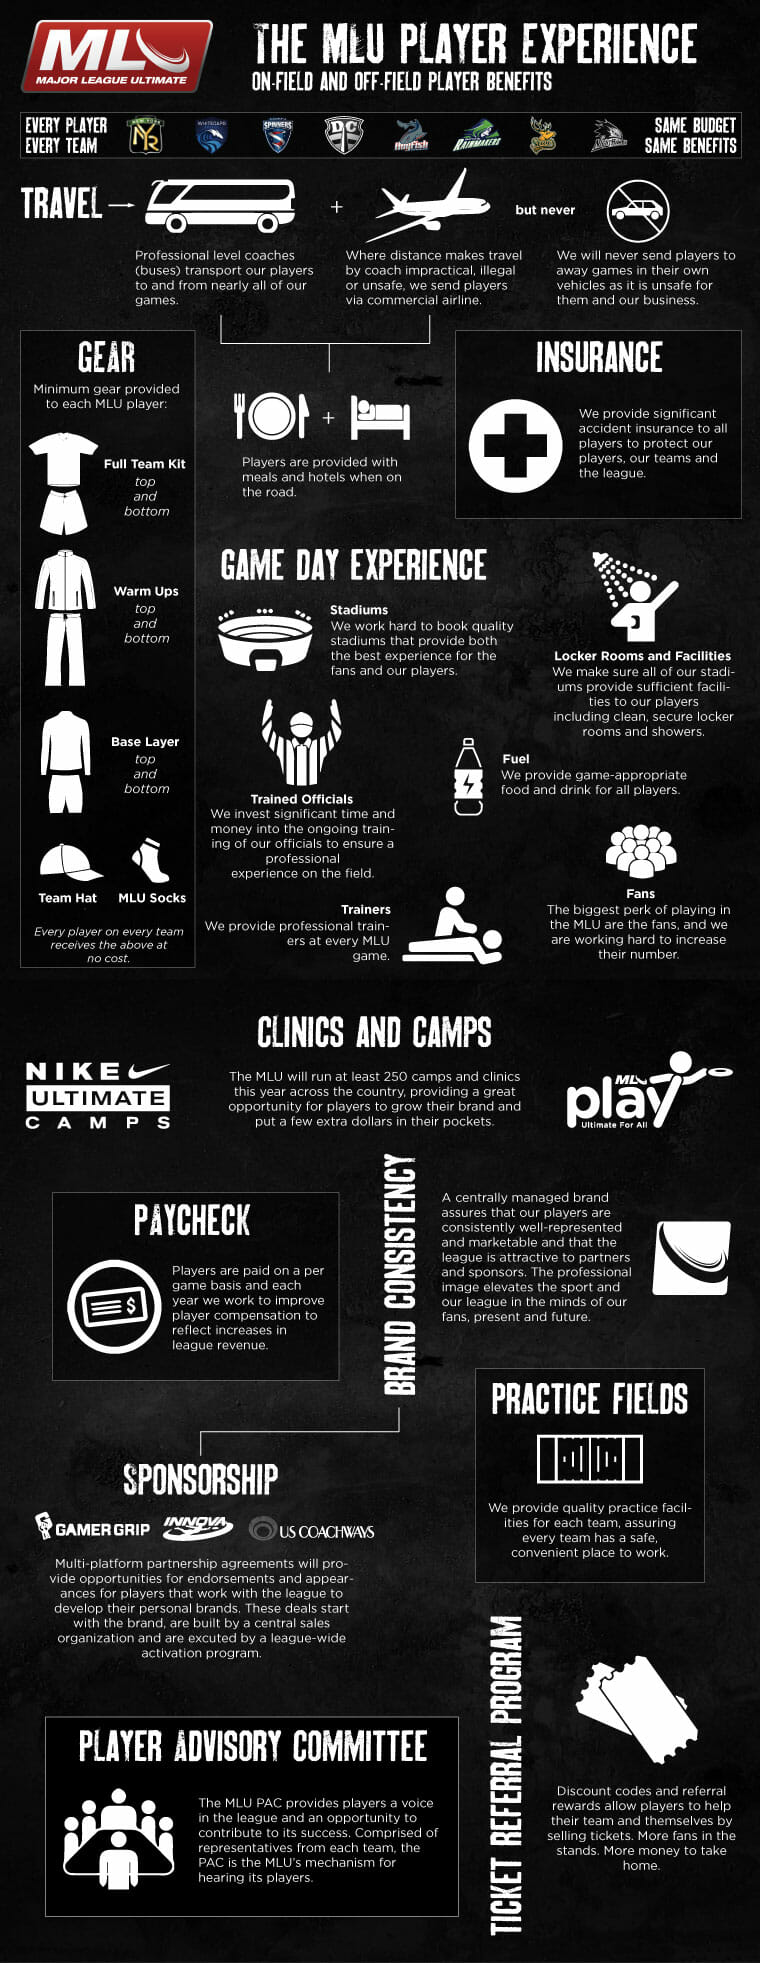 mlu player benefit infographic